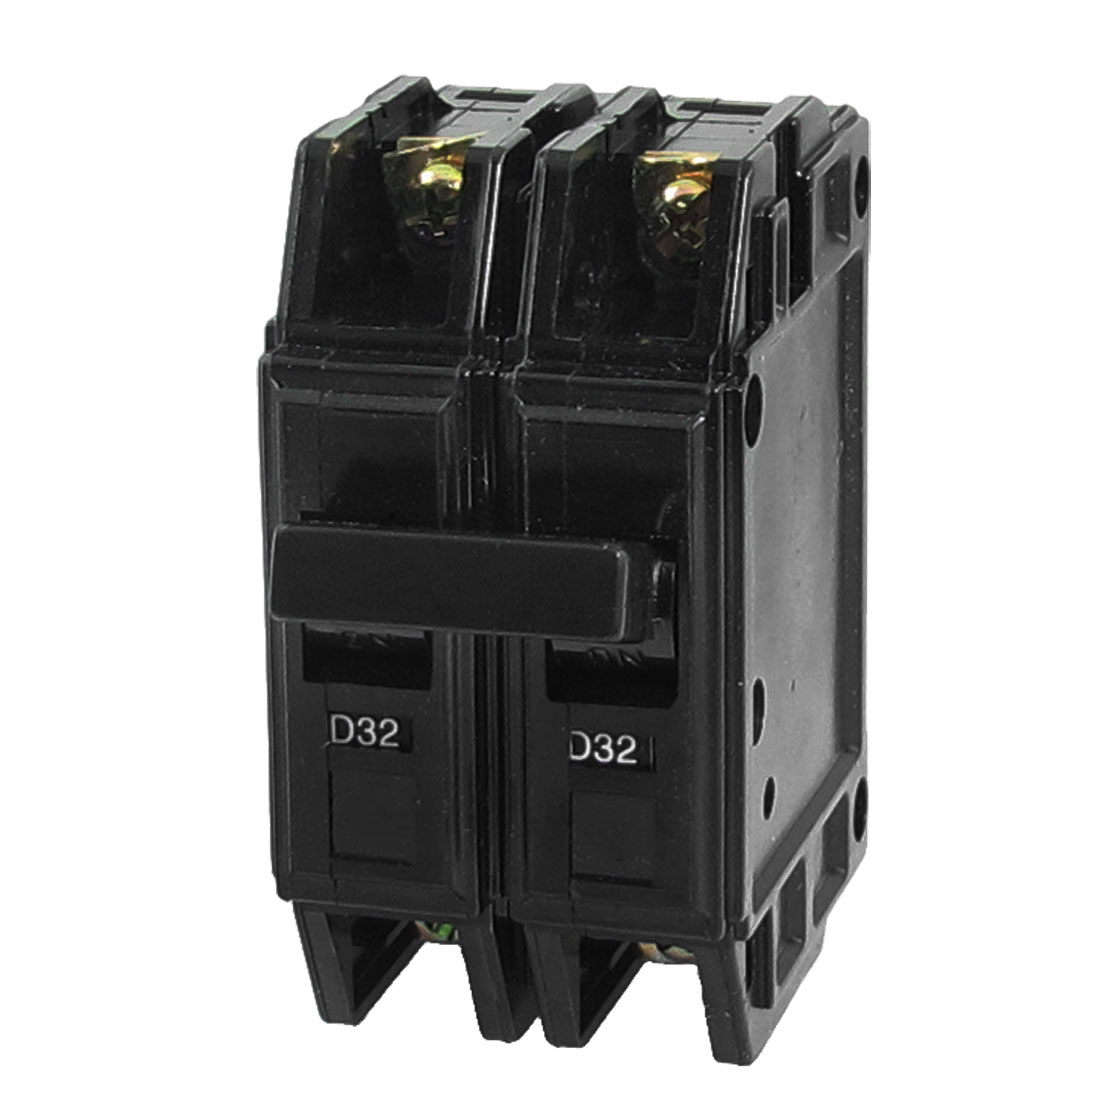 AC 220V 380V 32A 2P 2 Pole Moulded Case Circuit Breaker FM12-100